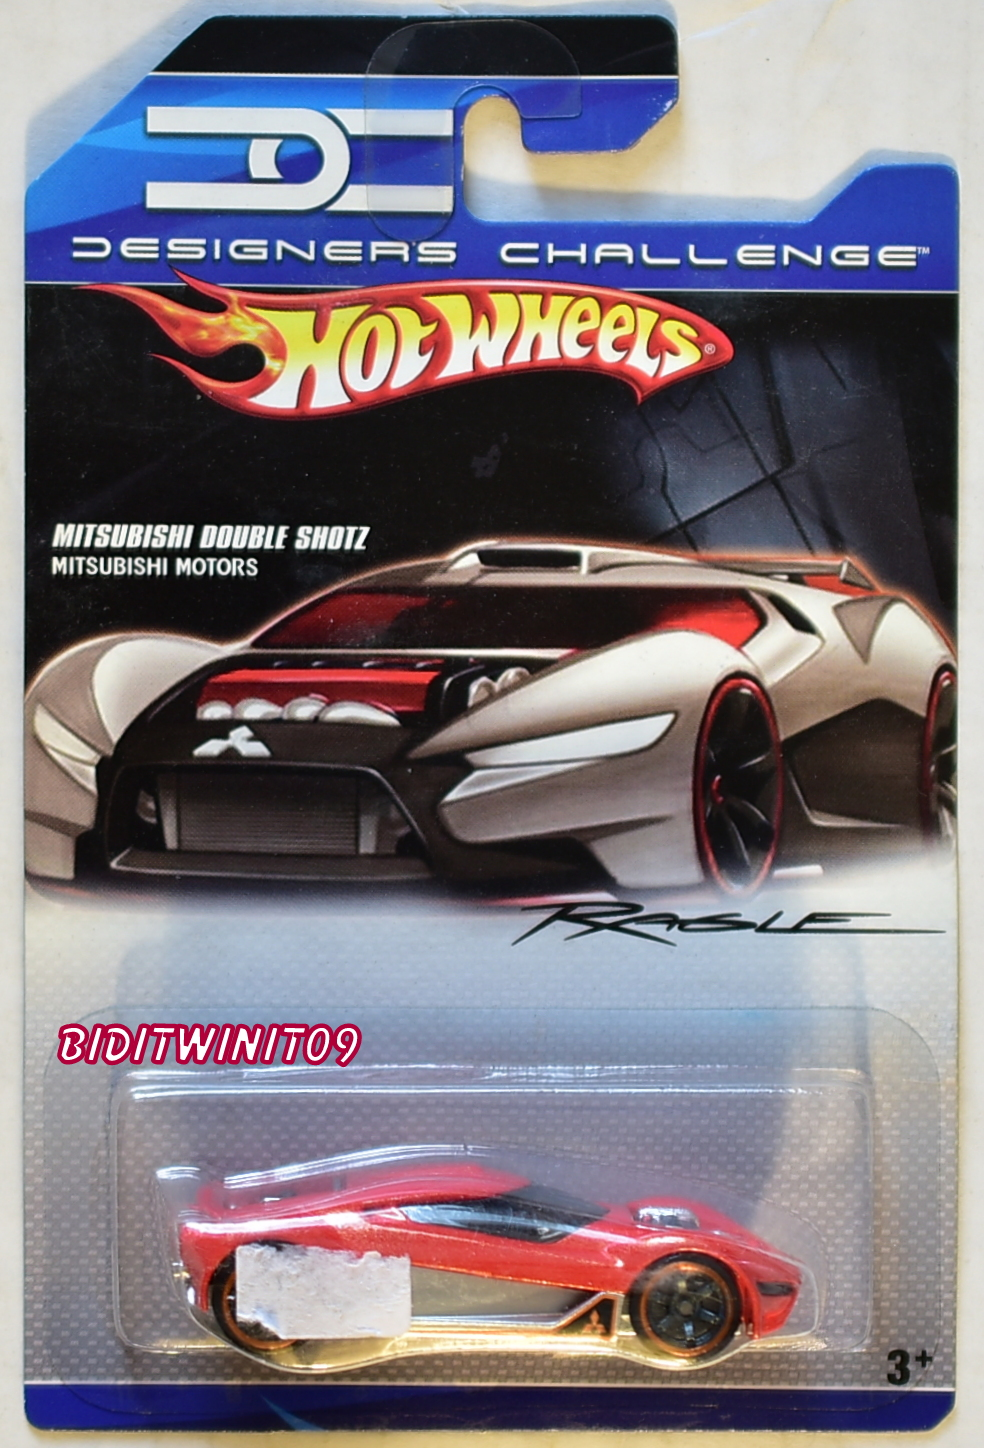 HOT WHEELS 2007 DESIGNERS CHALLENGE MITSUBISHI DOUBLE SHOTZ RED